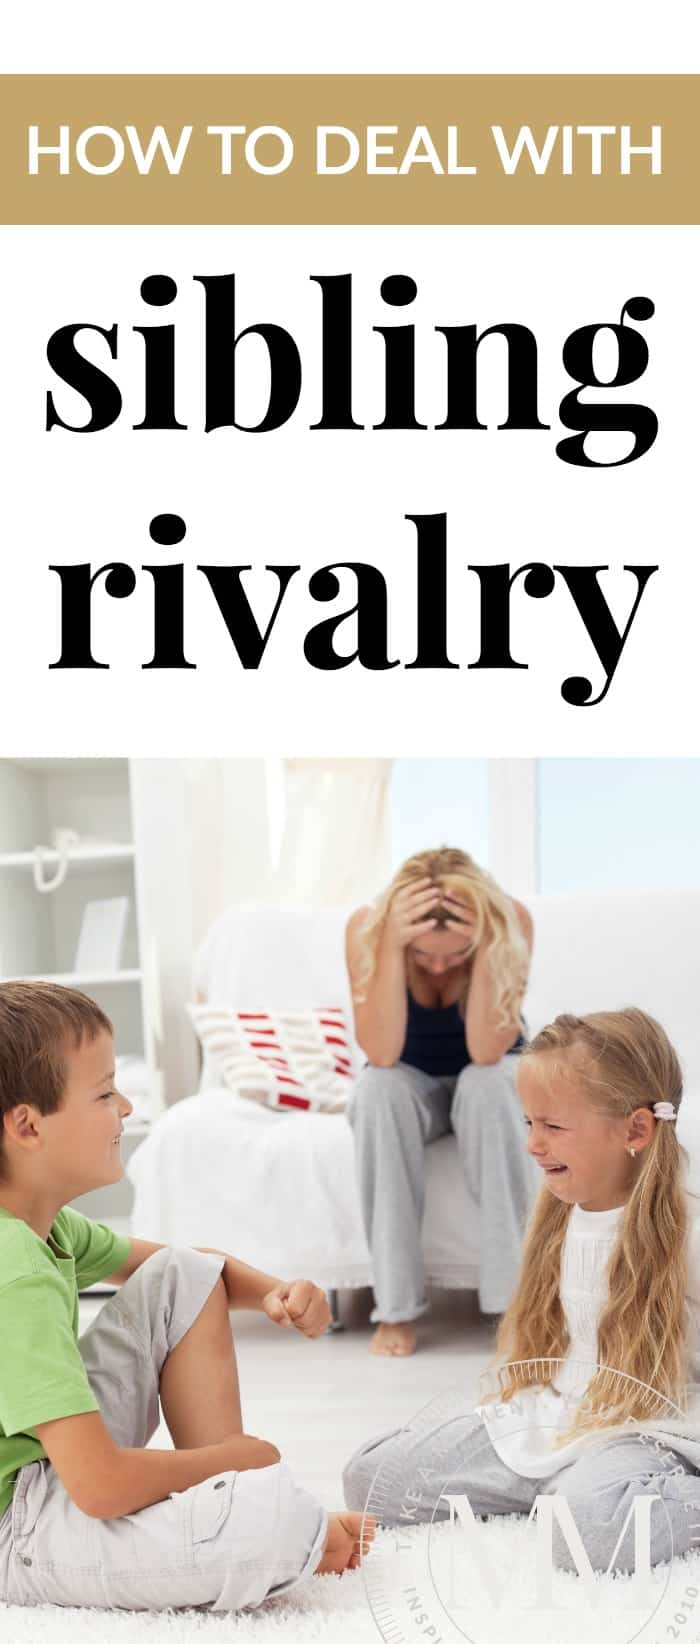 Sibling rivalry - Wouldn't it be amazing if siblings did not fight?